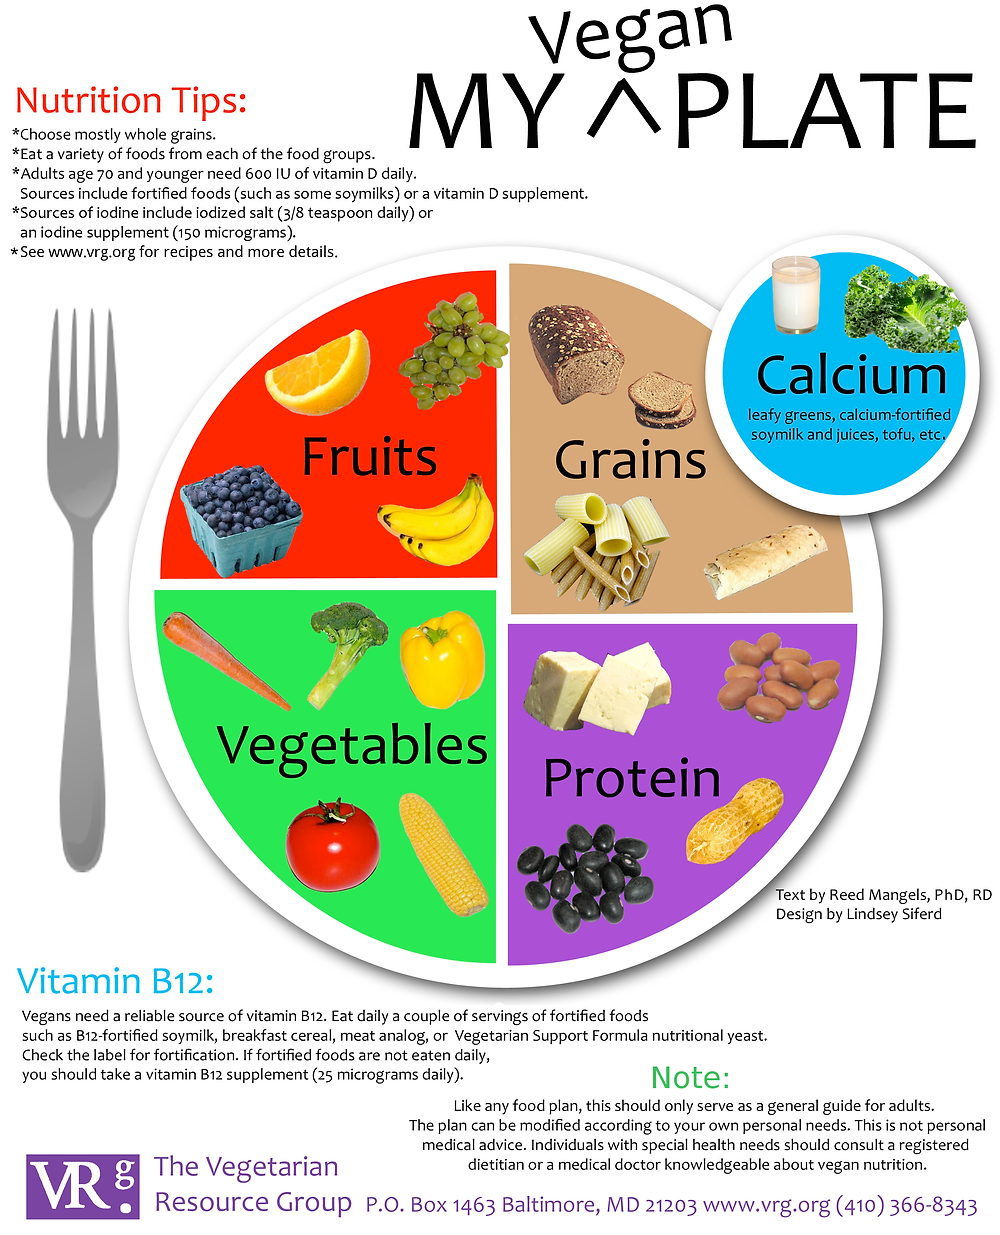 A MyPlate vegan version to show the food groups and portion sizes on a plate.